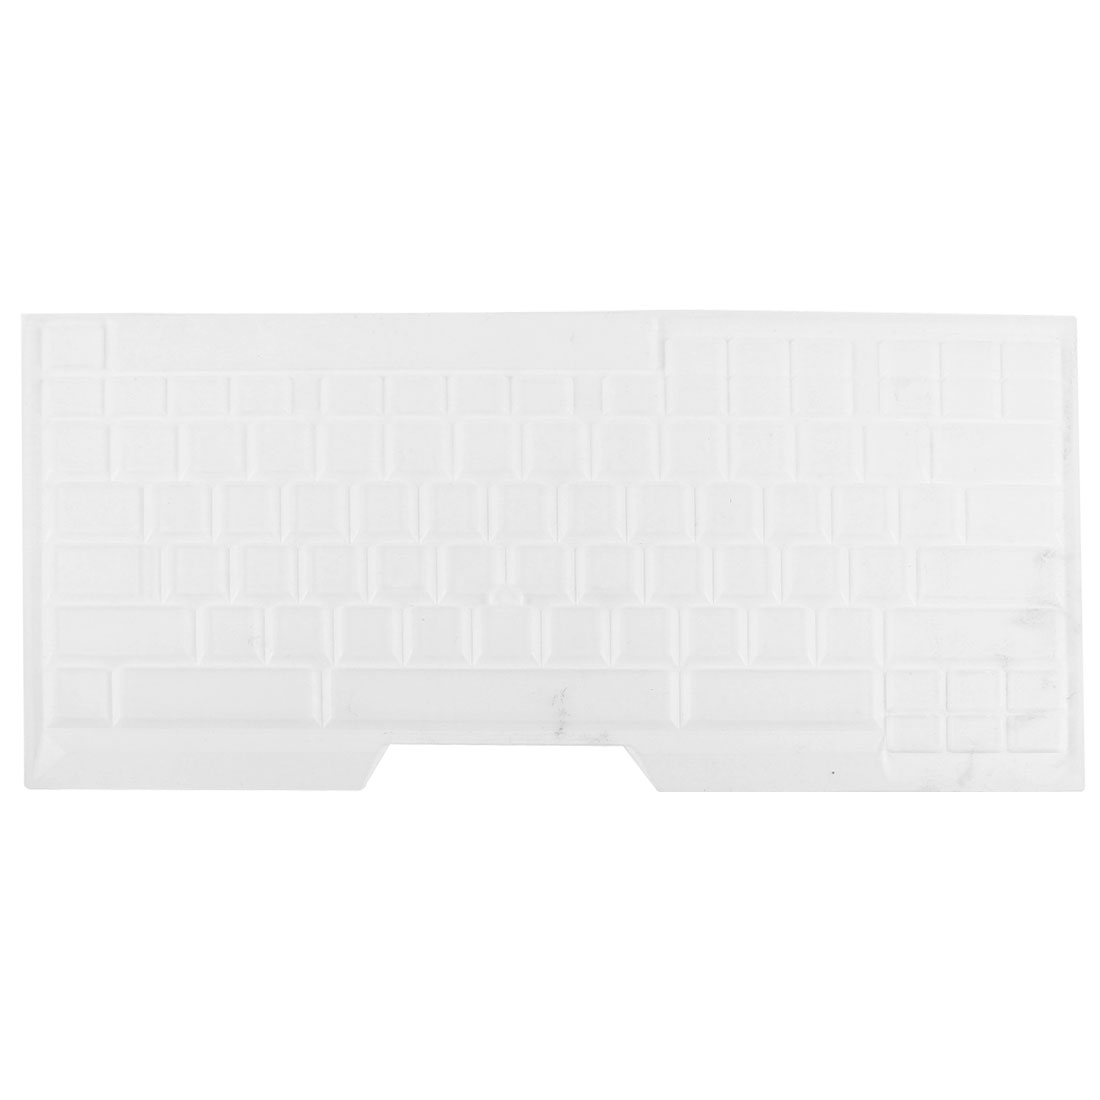 Clear Laptop Keyboard Protector Film Skin for IBM Z60 Z61 T60 R60 R61 T61